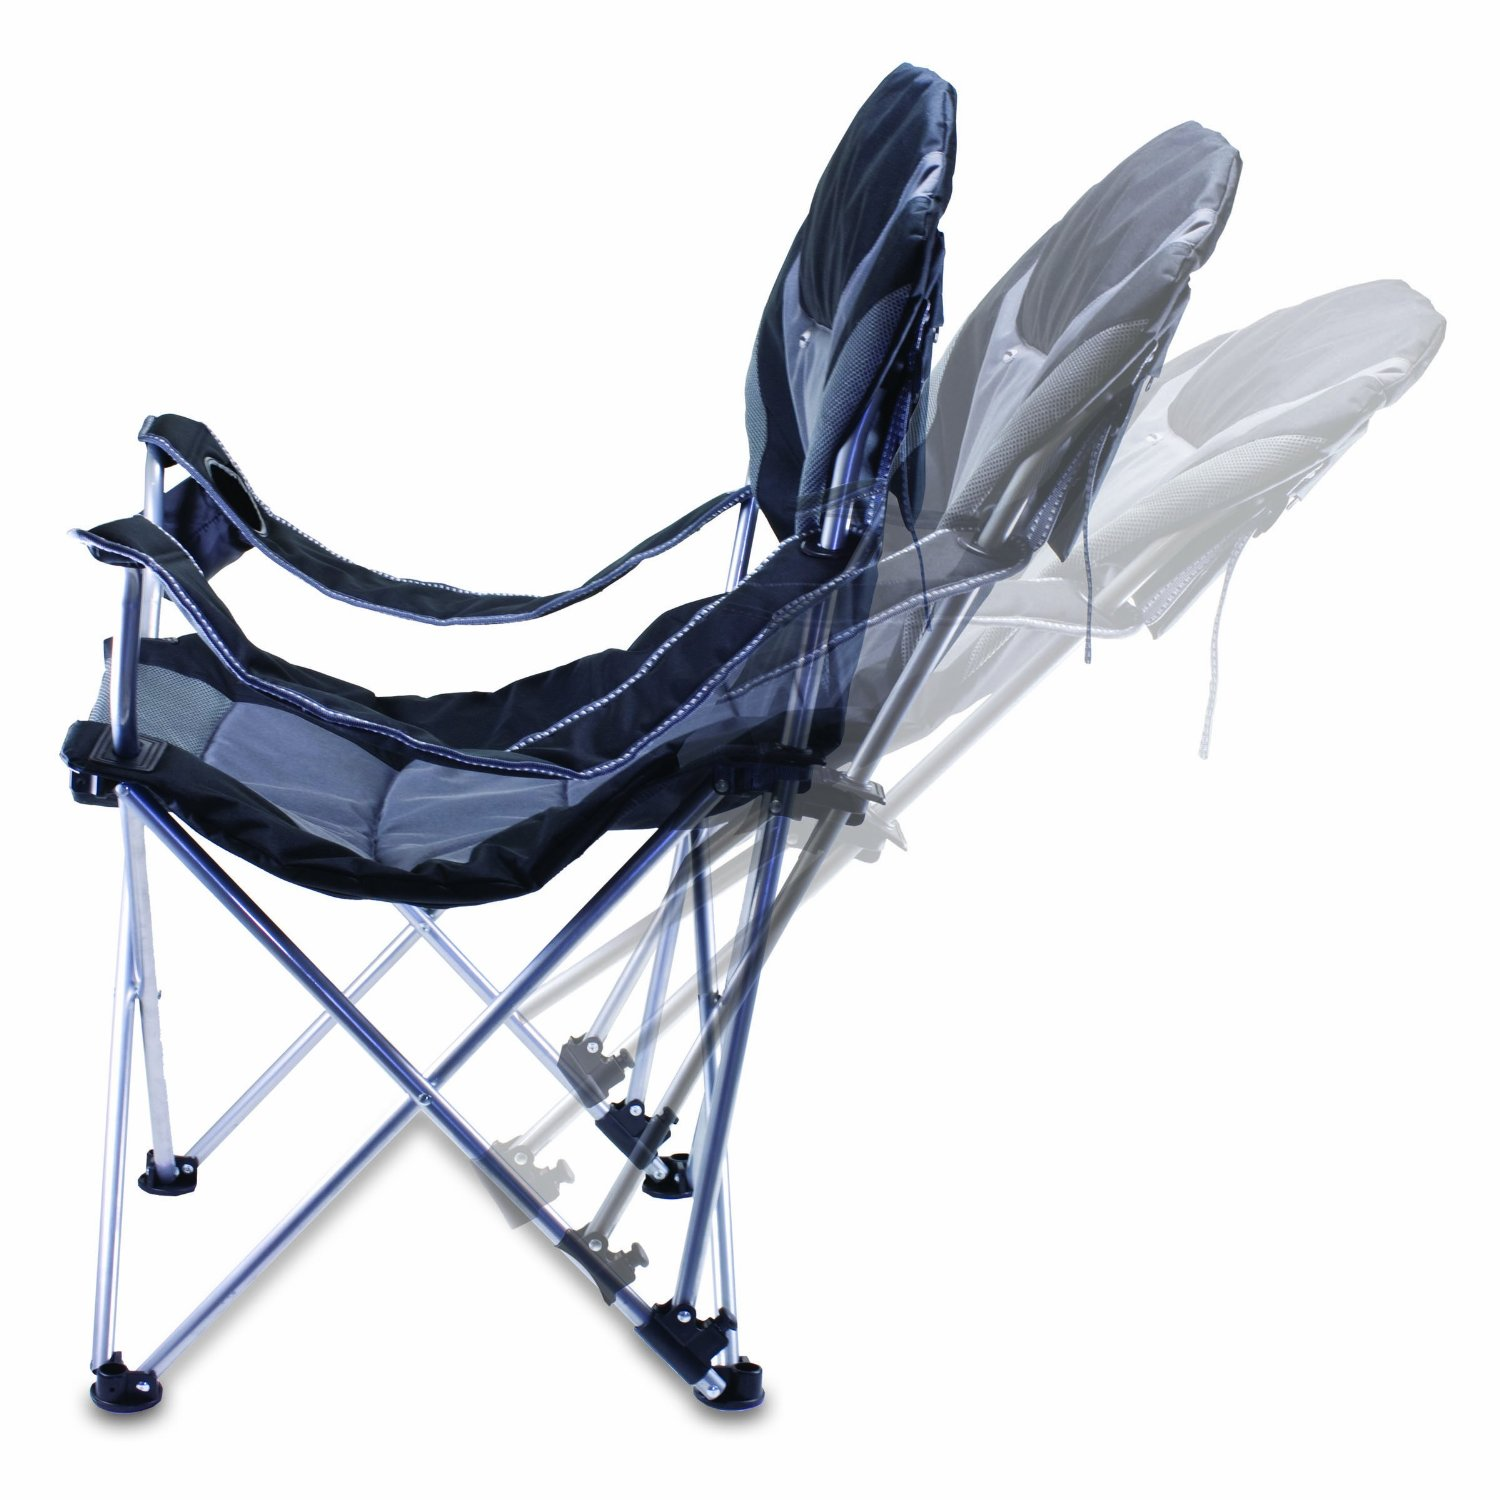 Reclining Camp Chair Top 5 Best Tailgate Chairs For The Tailgate Party